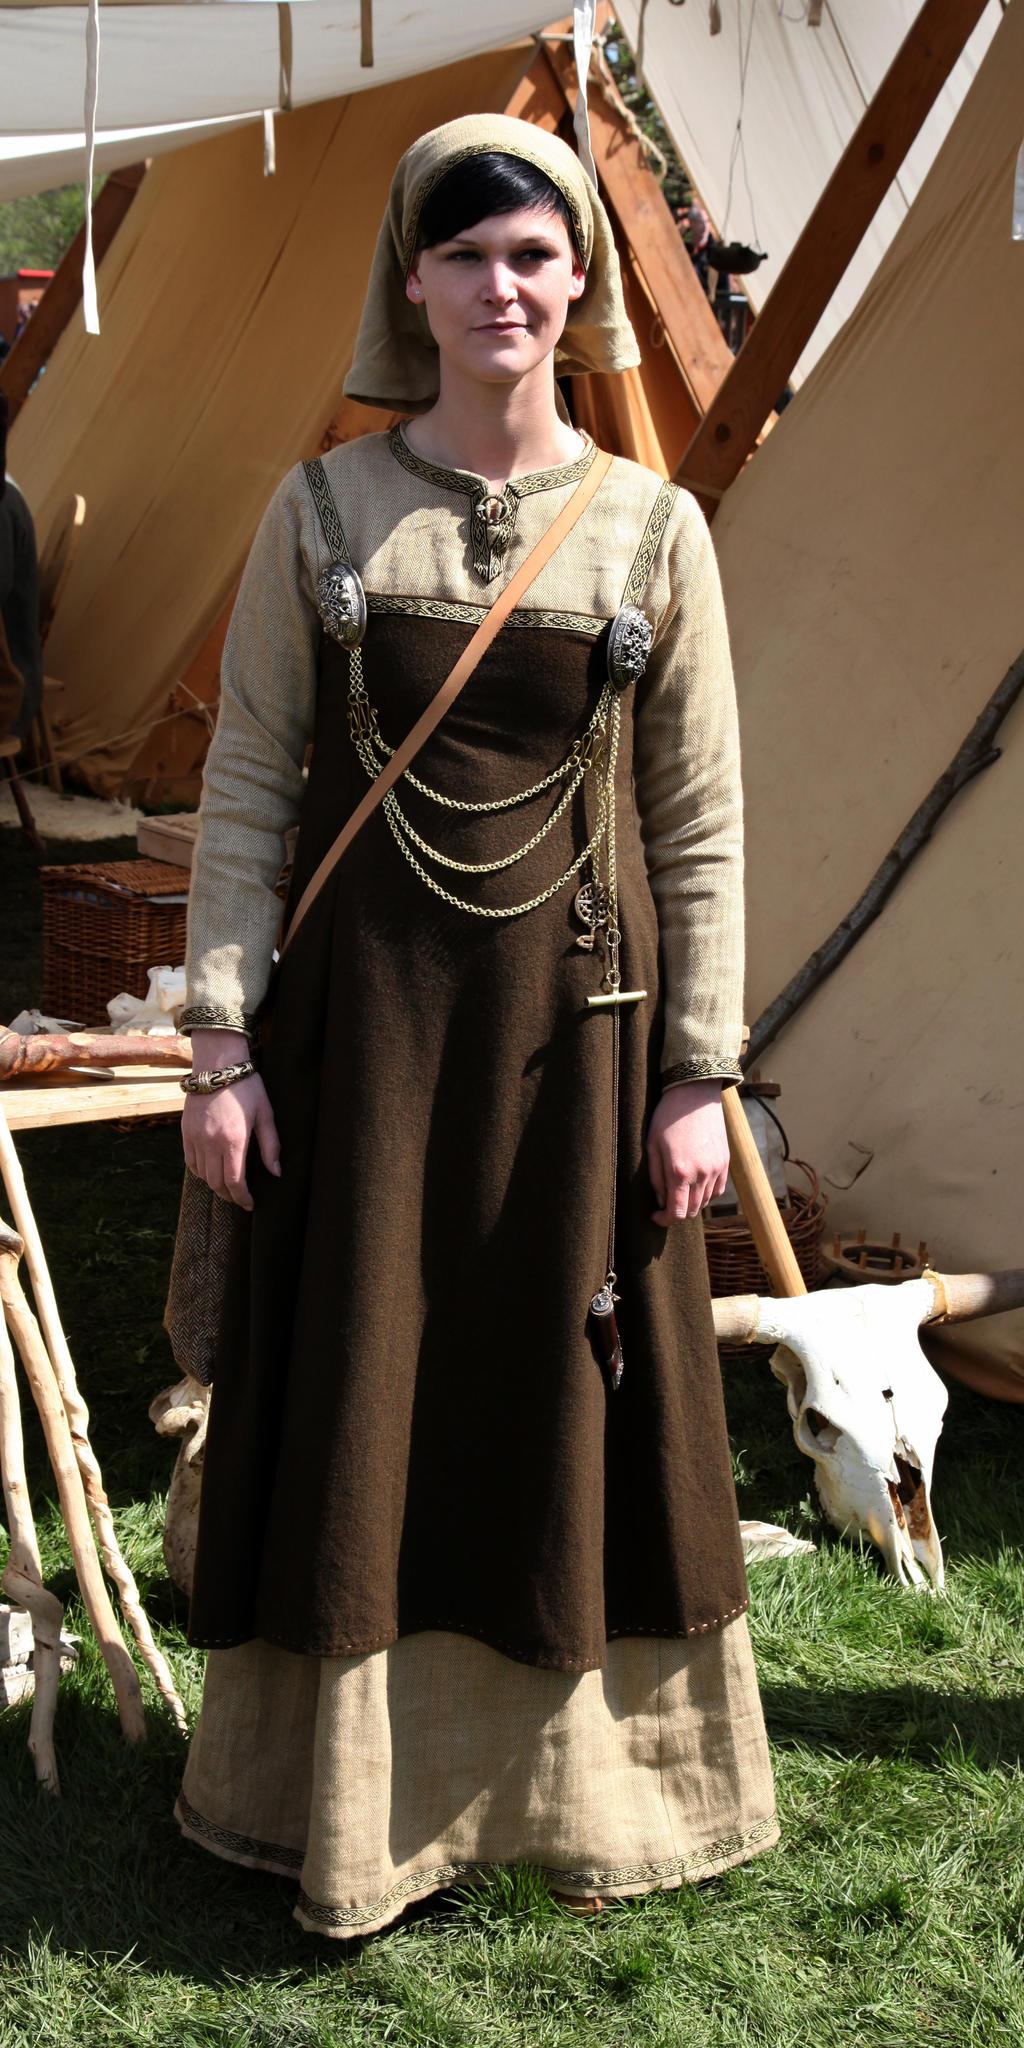 female viking clothing - photo #2